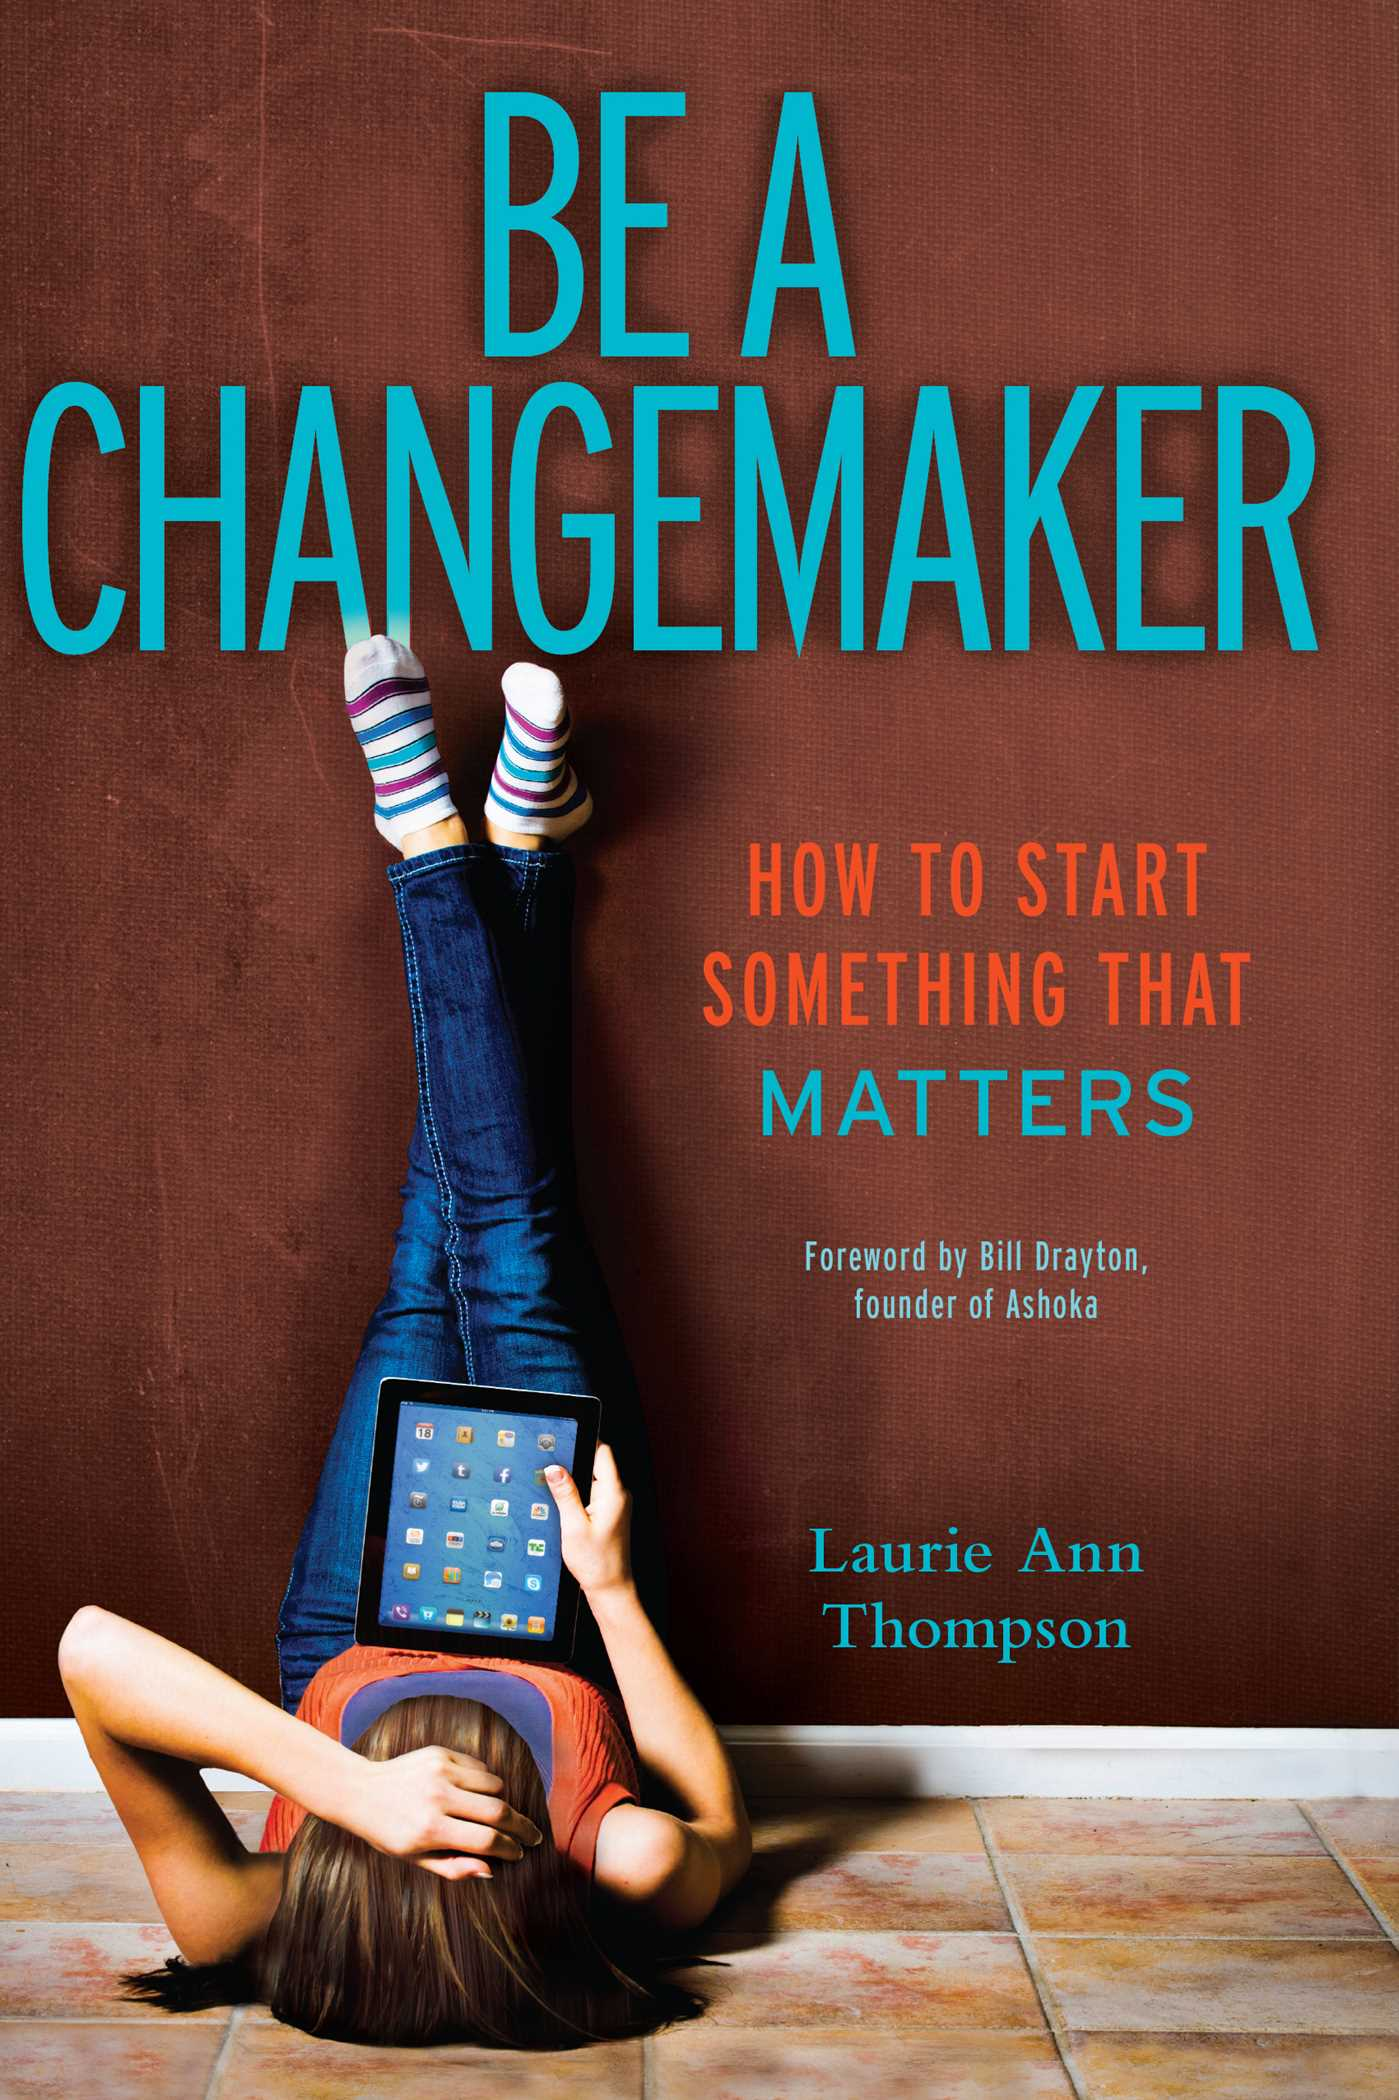 Be a changemaker 9781582704654 hr